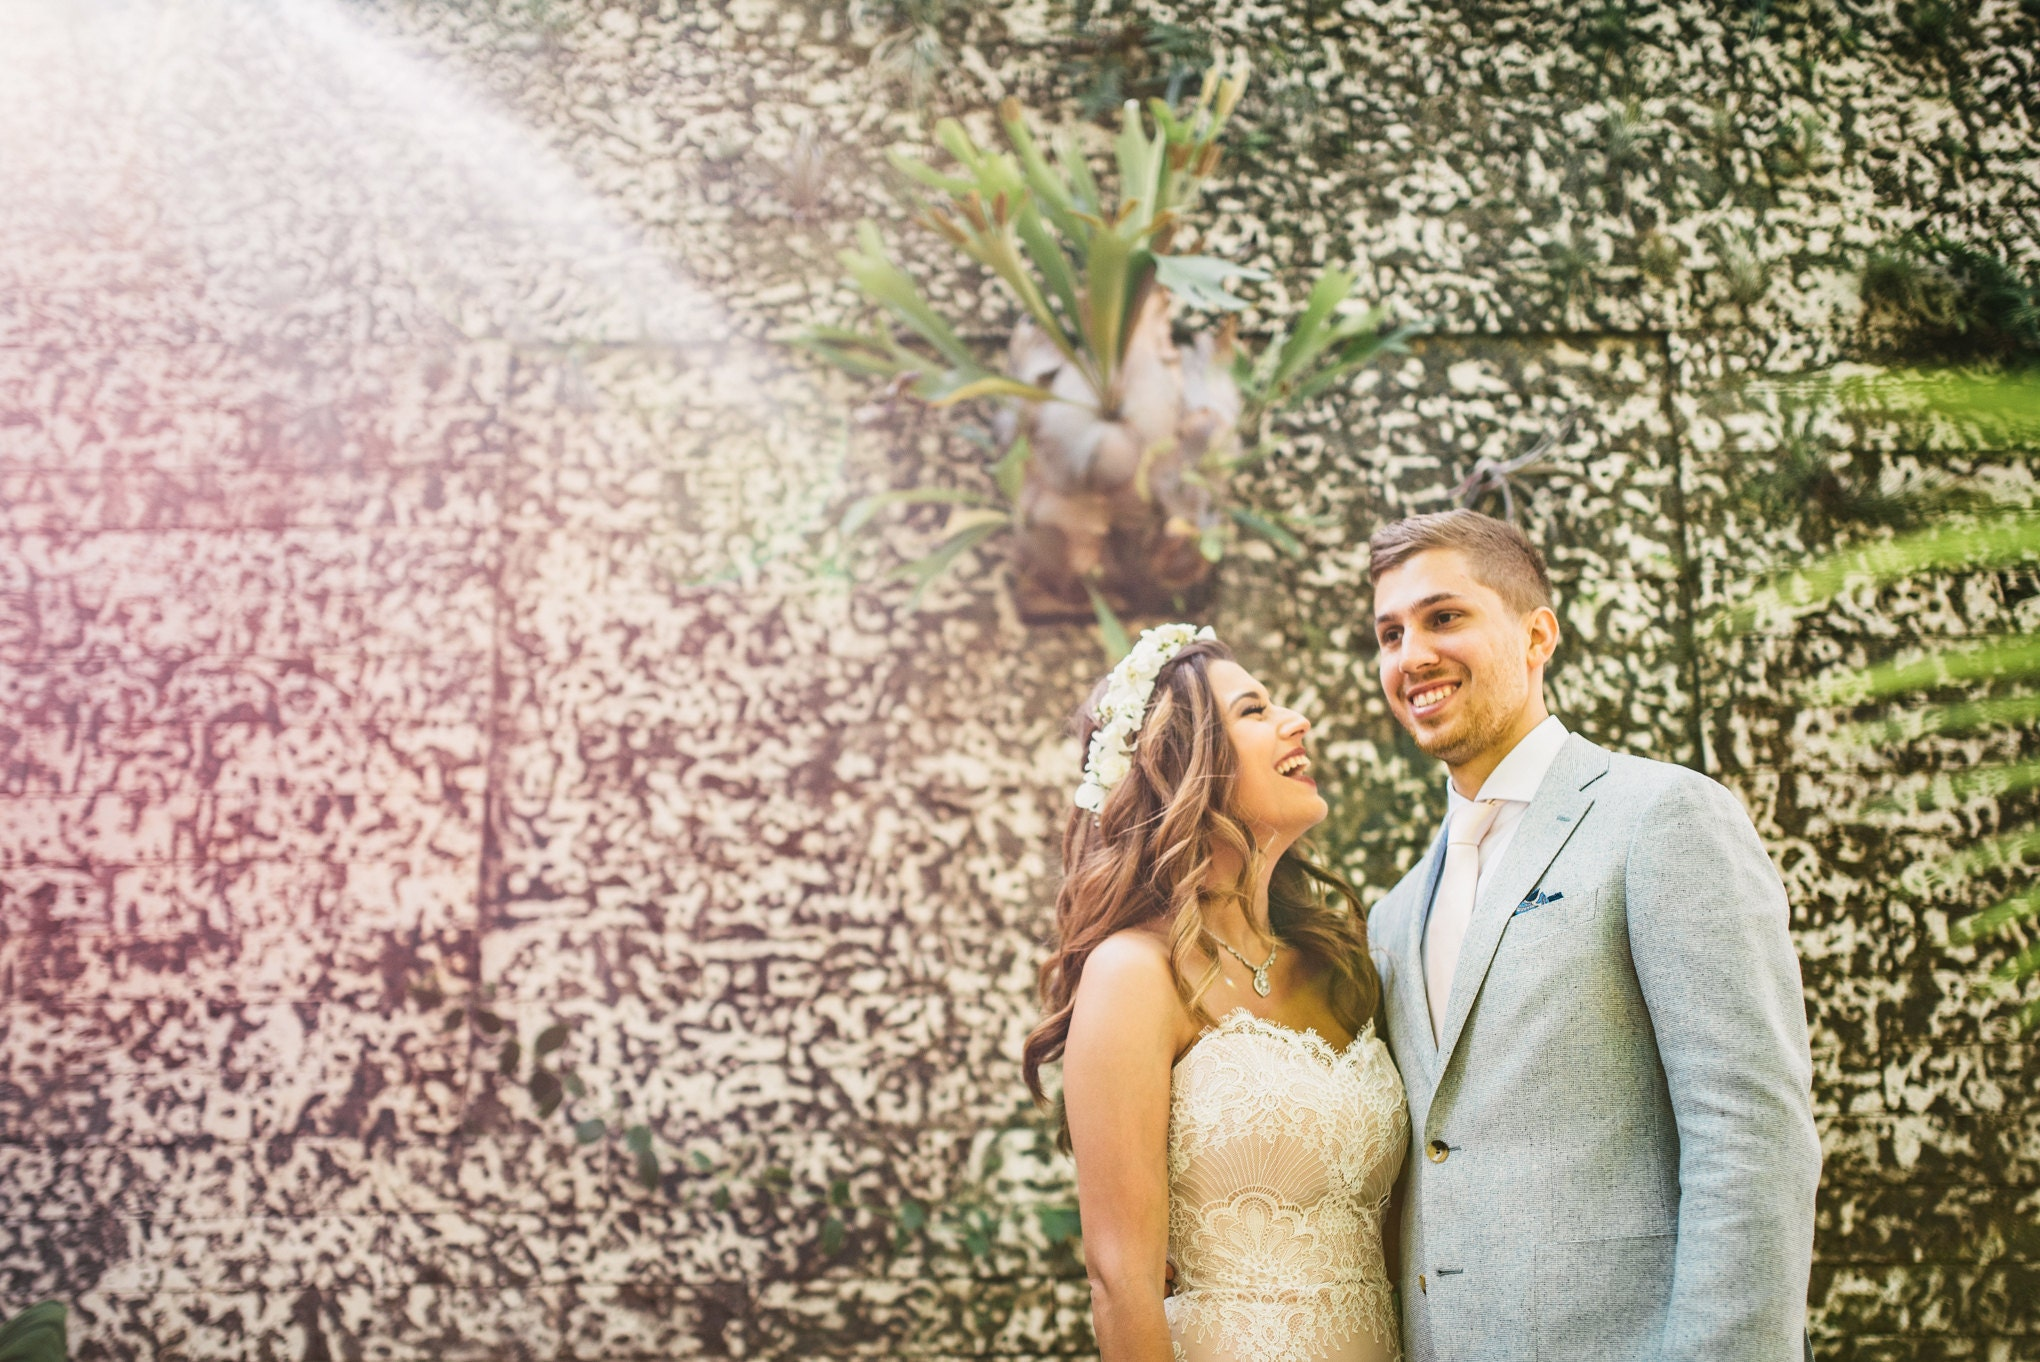 Event Planner: Busy Bees Events | Photography: Moriah Cuda